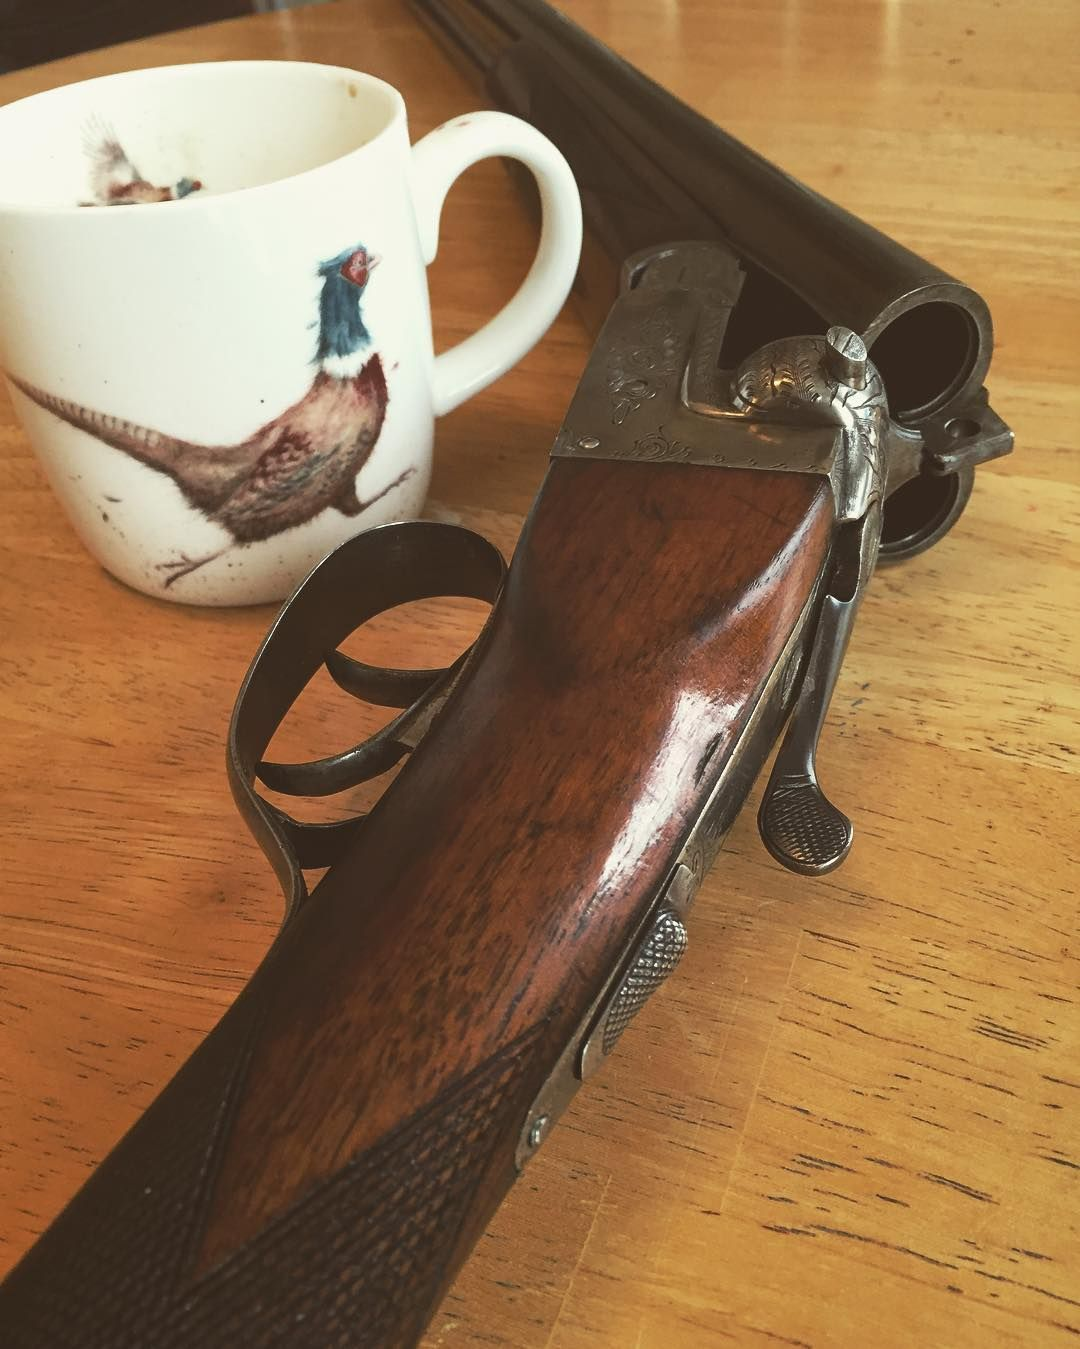 « Time for a nice cuppa and clean this Beauty down after a cracking shoot #clayshooting #claypigeonshooting #sidebysideshotgun #fieldsports #countryliving… »